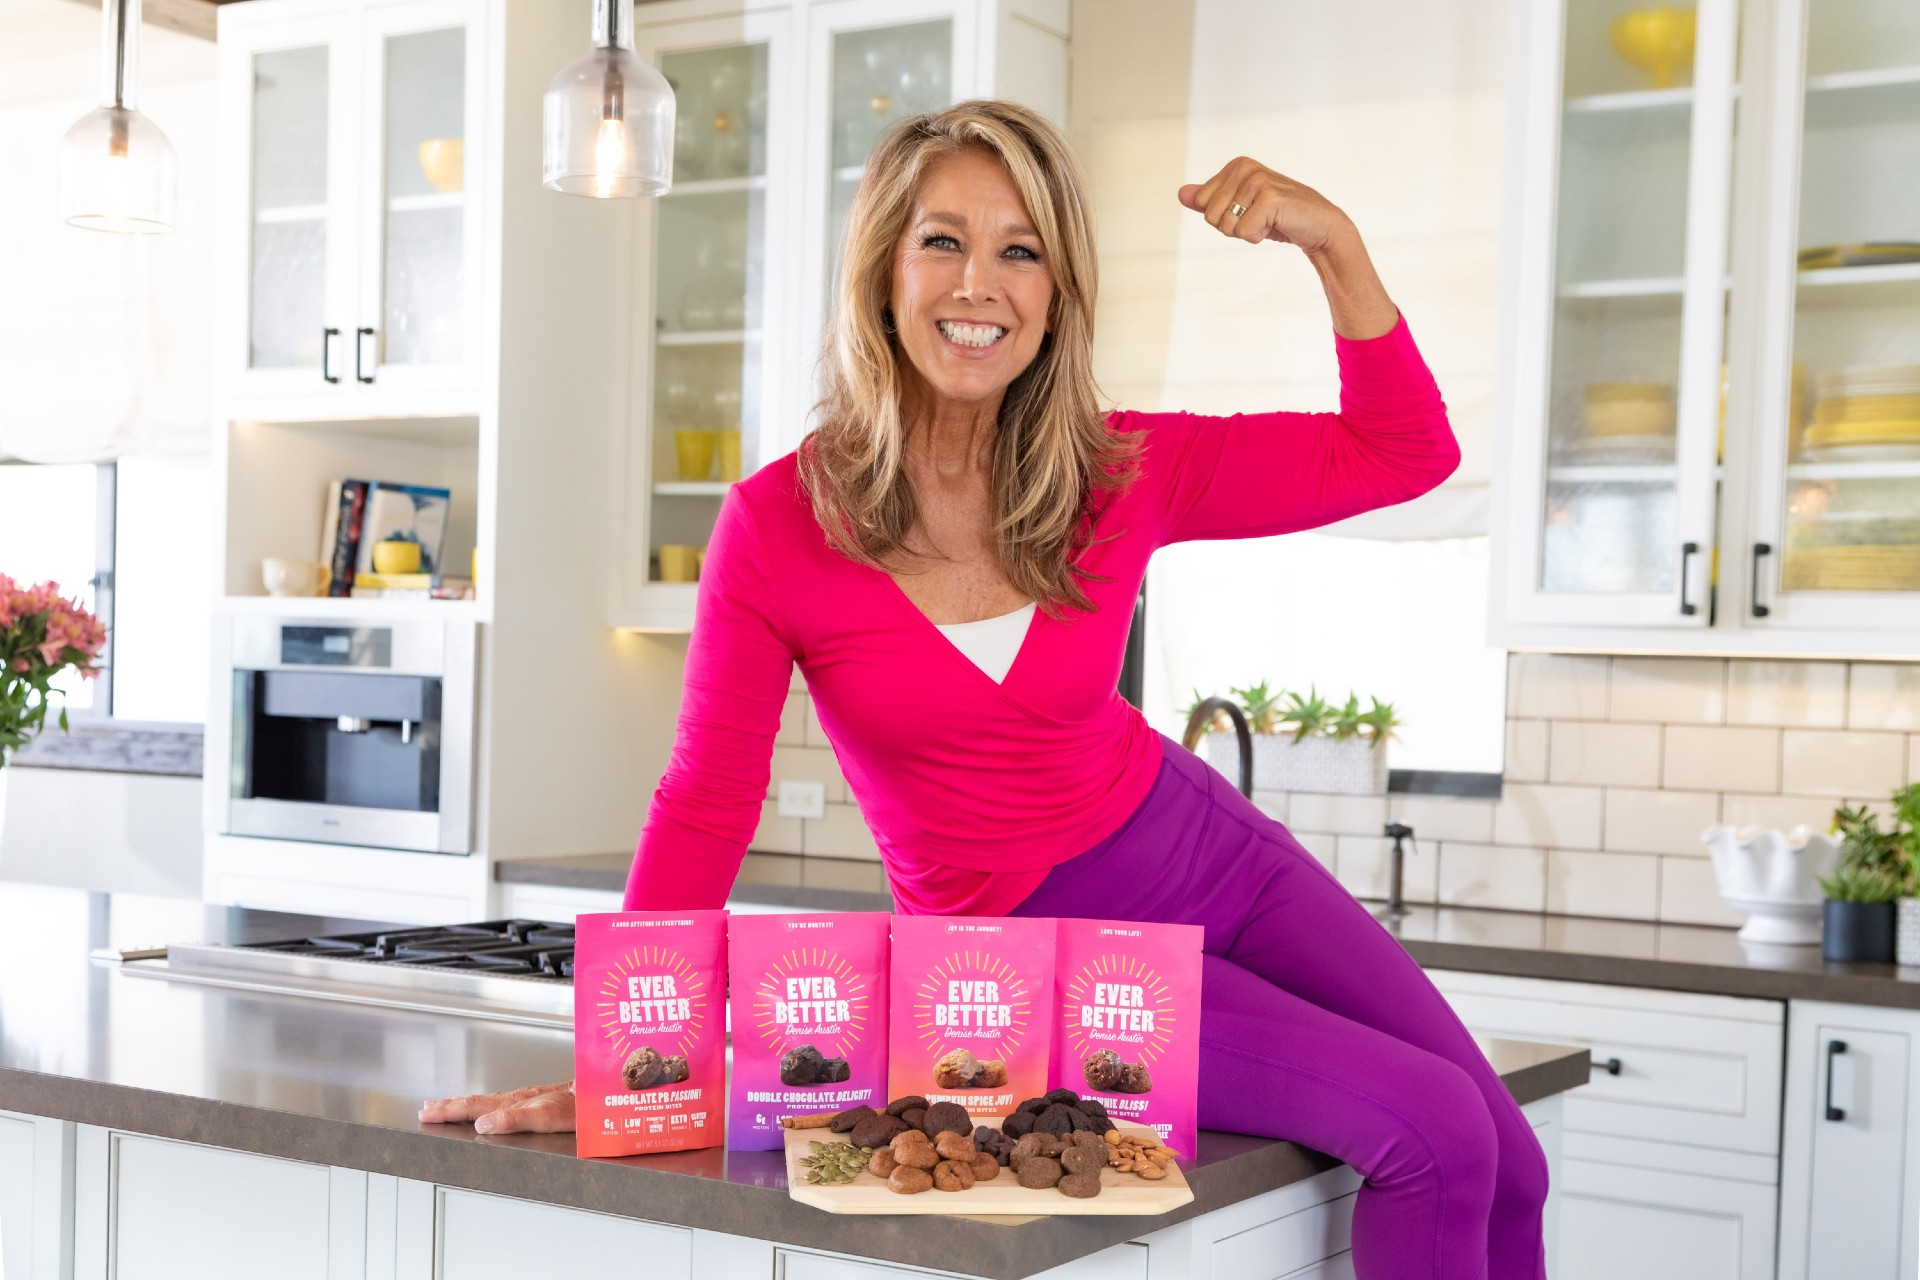 Introducing My All New EVER BETTER™ Protein Bites!